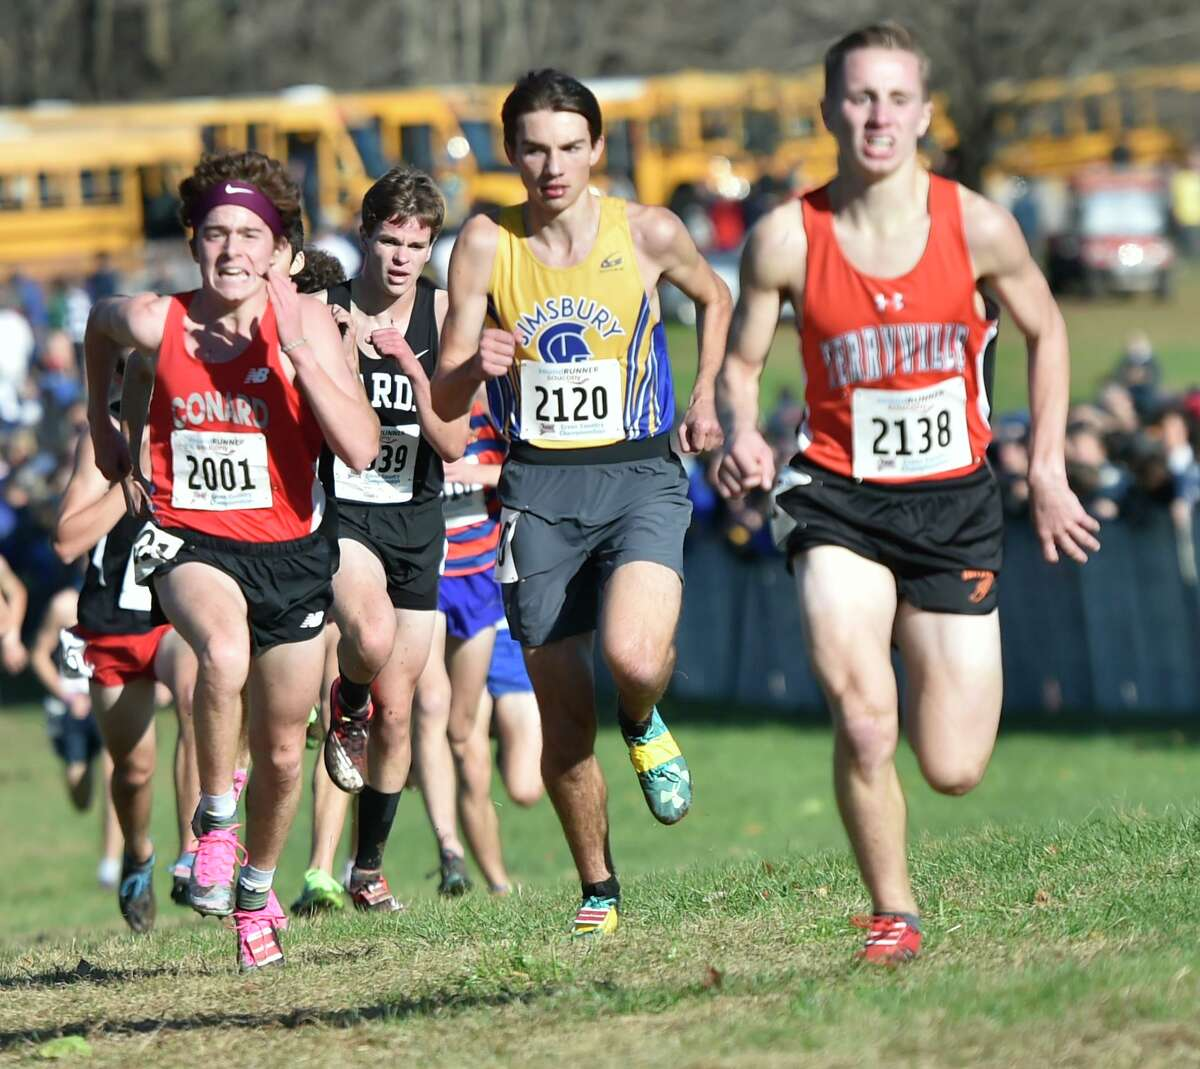 Manchester, Connecticut -Wednesday, November 1, 2019: 9th place finisher Callum Sherry of Conard H.S., 13th place fisher Gregory Vogt of Fairfield Warde H.S., 10th place finisher Owen Wollenberg of Simsbury H.S., and 11th place finisher Chris Deforest of Terryville H.S. , left to right, run toward the finish line during the CIAC Boys Cross Country Open Championship Friday at Wickham Park in Manchester.